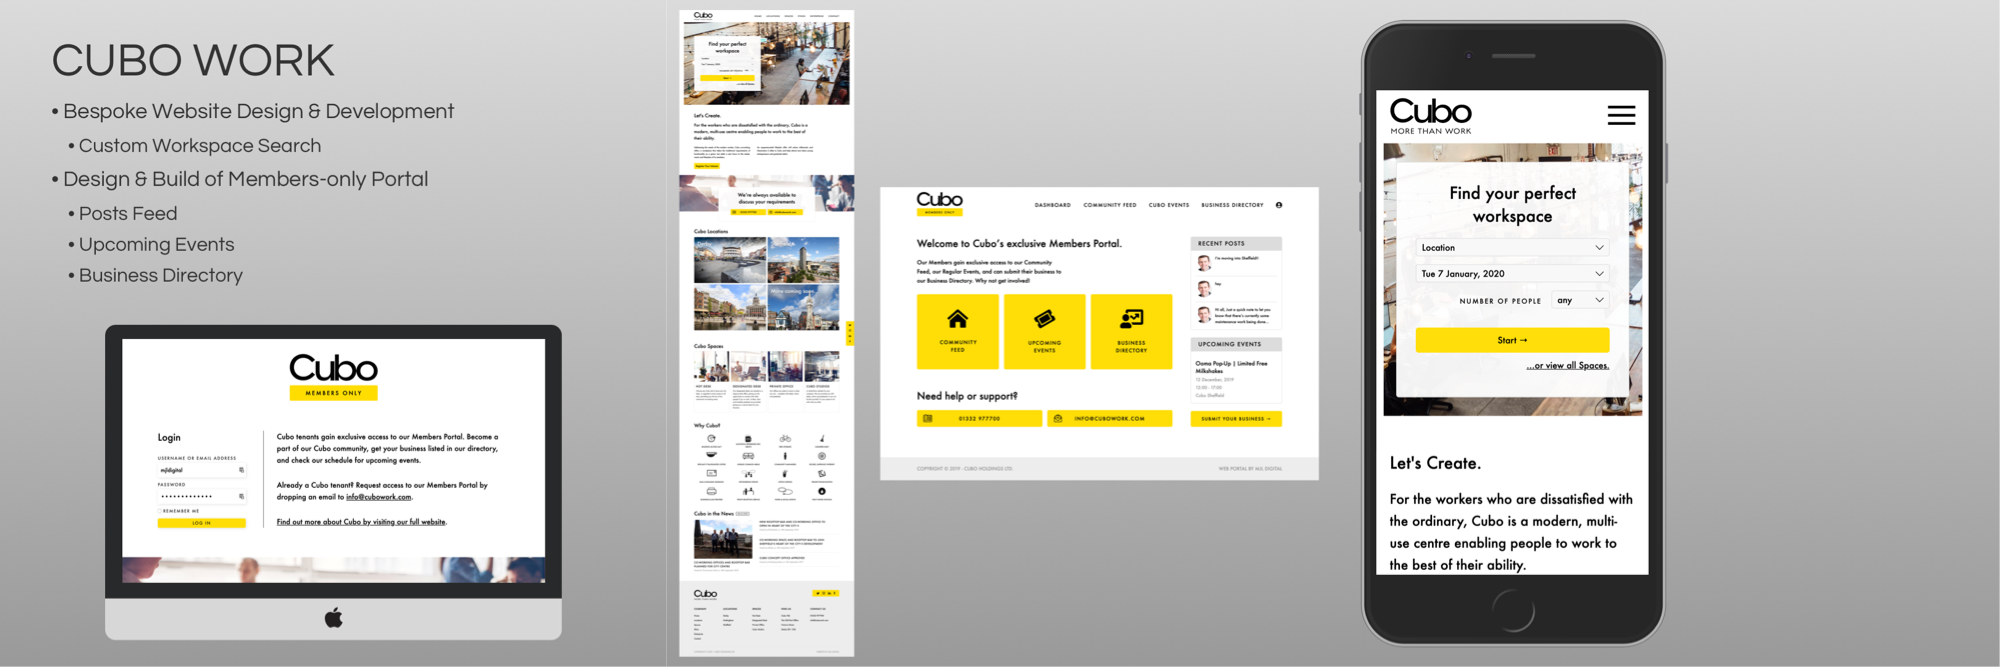 Photo of MJL Digital's work completed for Cubo Work